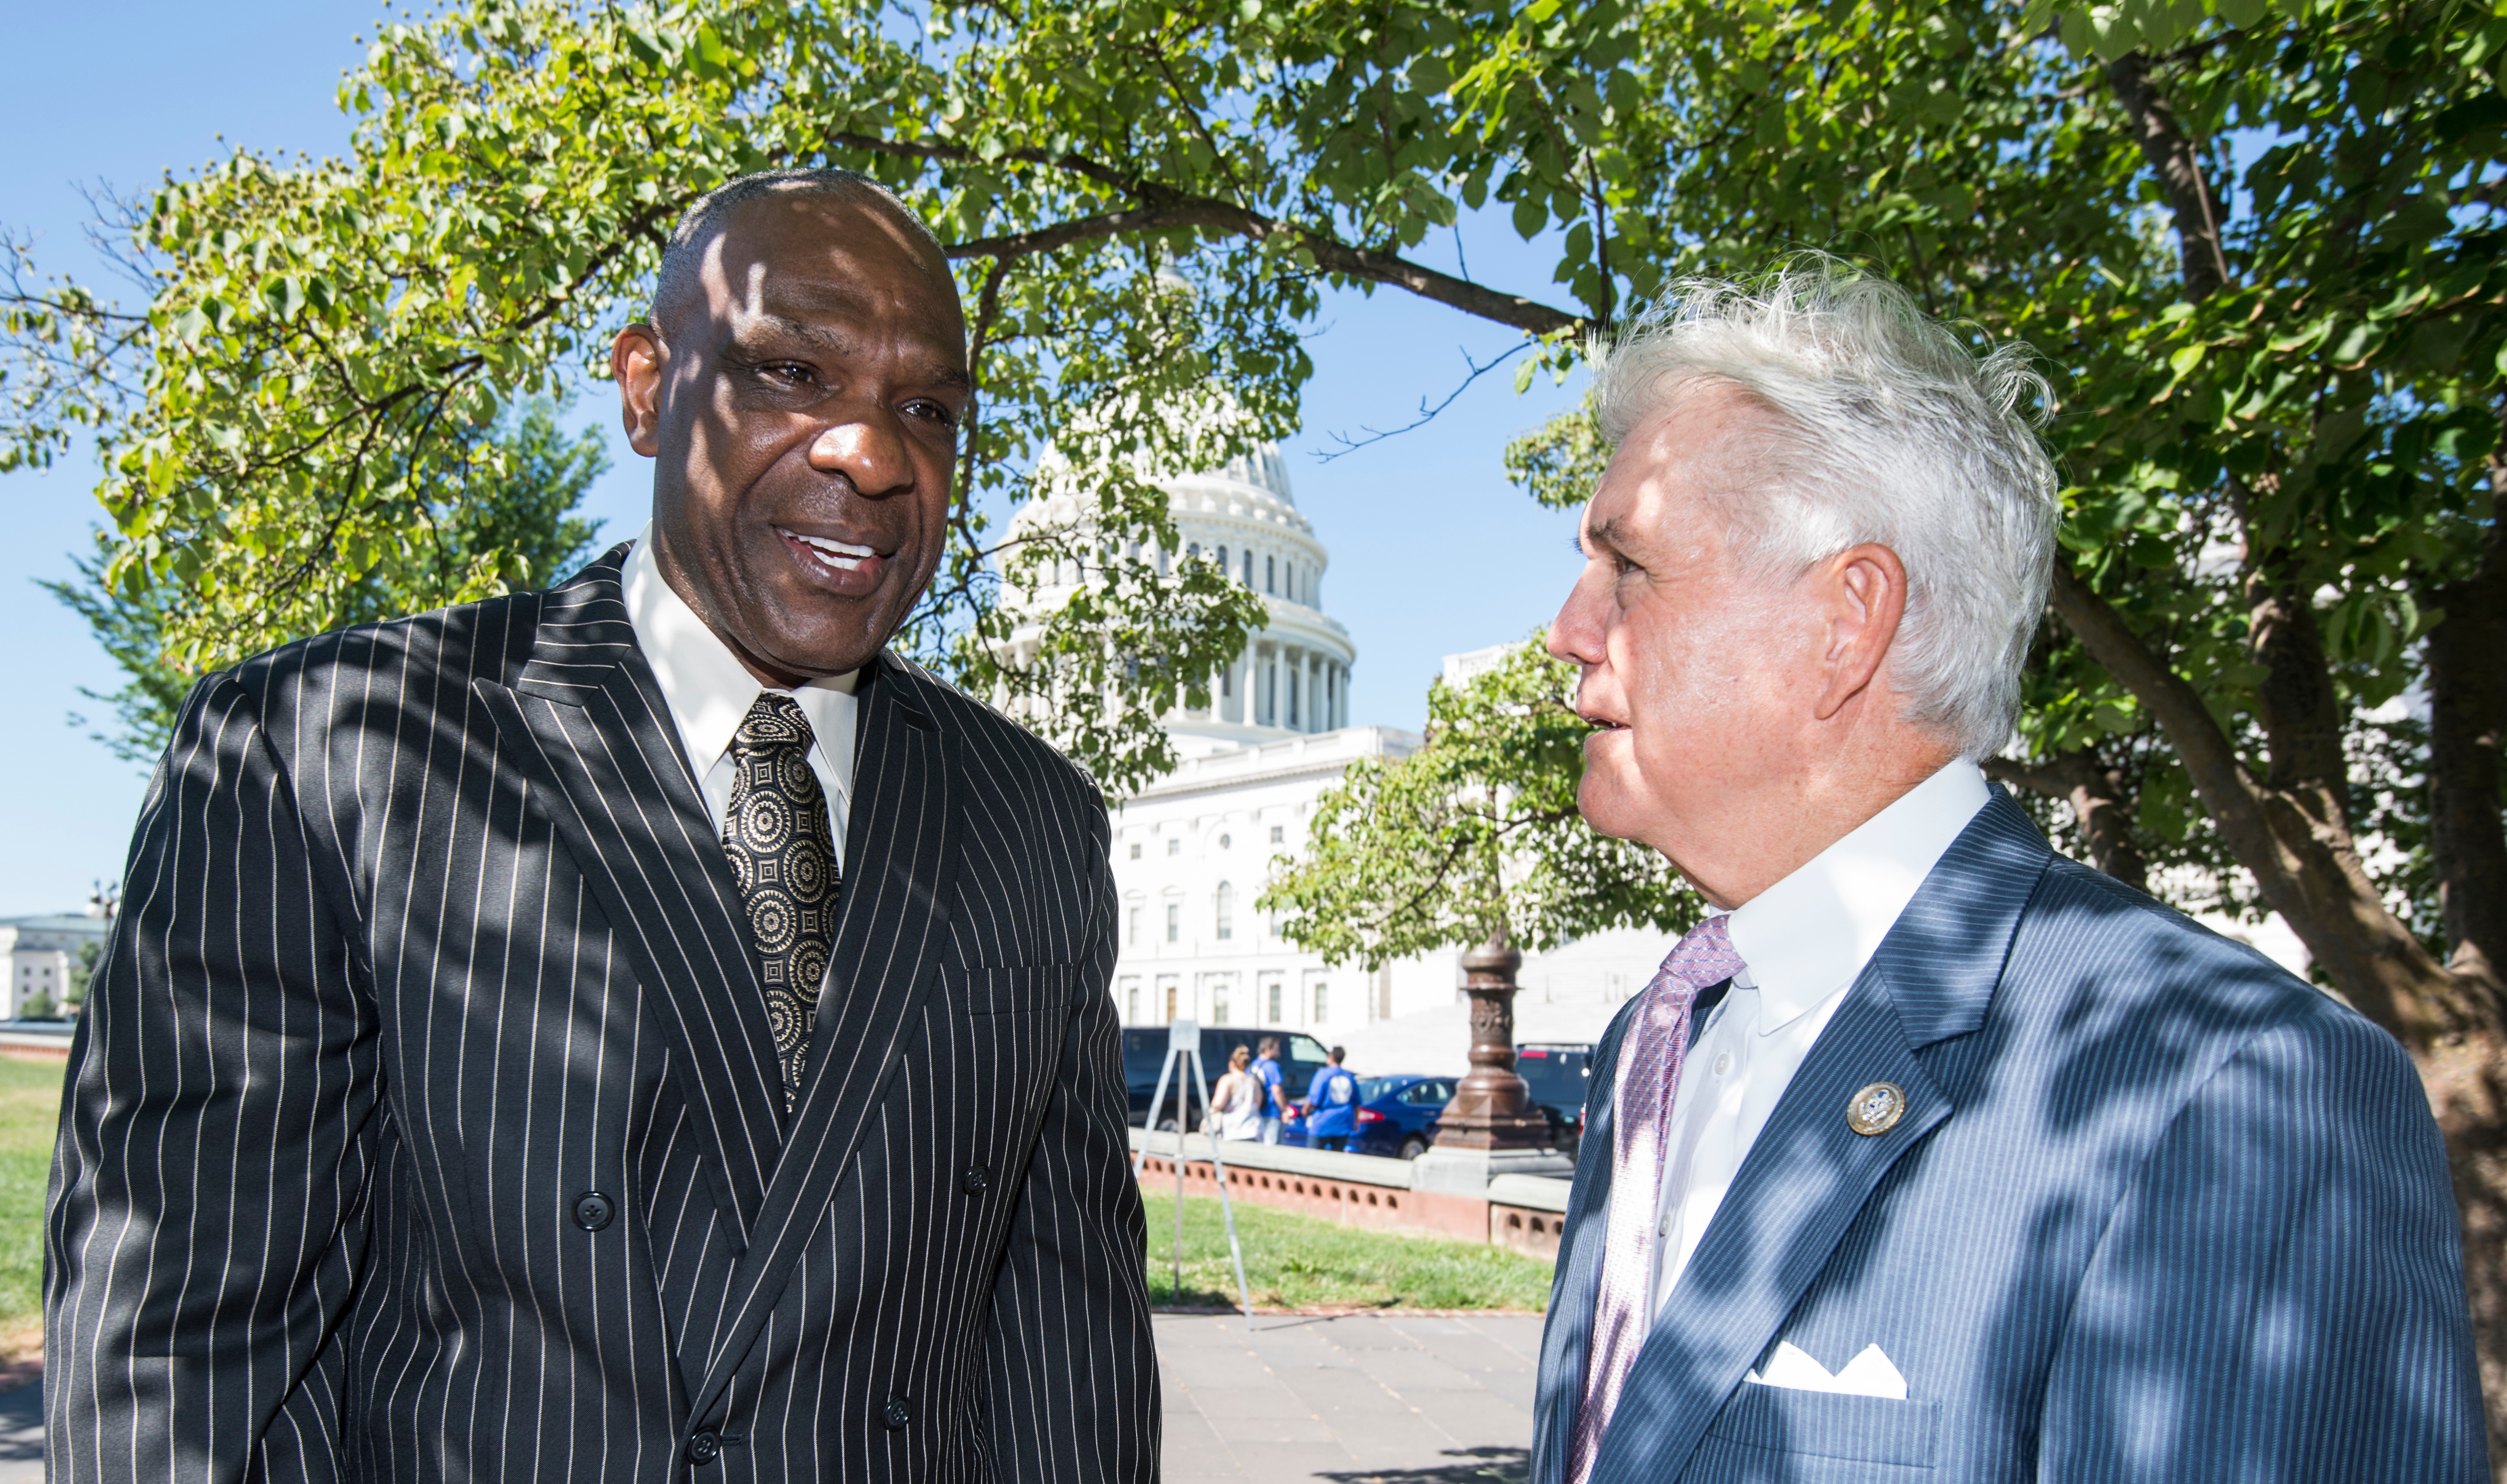 UNITED STATES - JULY 18: From left, baseball Hall of Famer Andre Dawson and Rep. Roger Williams, R-Texas, talk before their press conference outside the Capitol on Wednesday, July 18, 2018, commemorating the 75th anniversary of the integration of baseball. In honor of the anniversary, members of Congress are pushing for the Integration of Baseball Commemorative Coin Act which will authorize the United States Mint to create a commemorative coin to honor those who fought for the integration of baseball. (Photo By Bill Clark/CQ Roll Call)